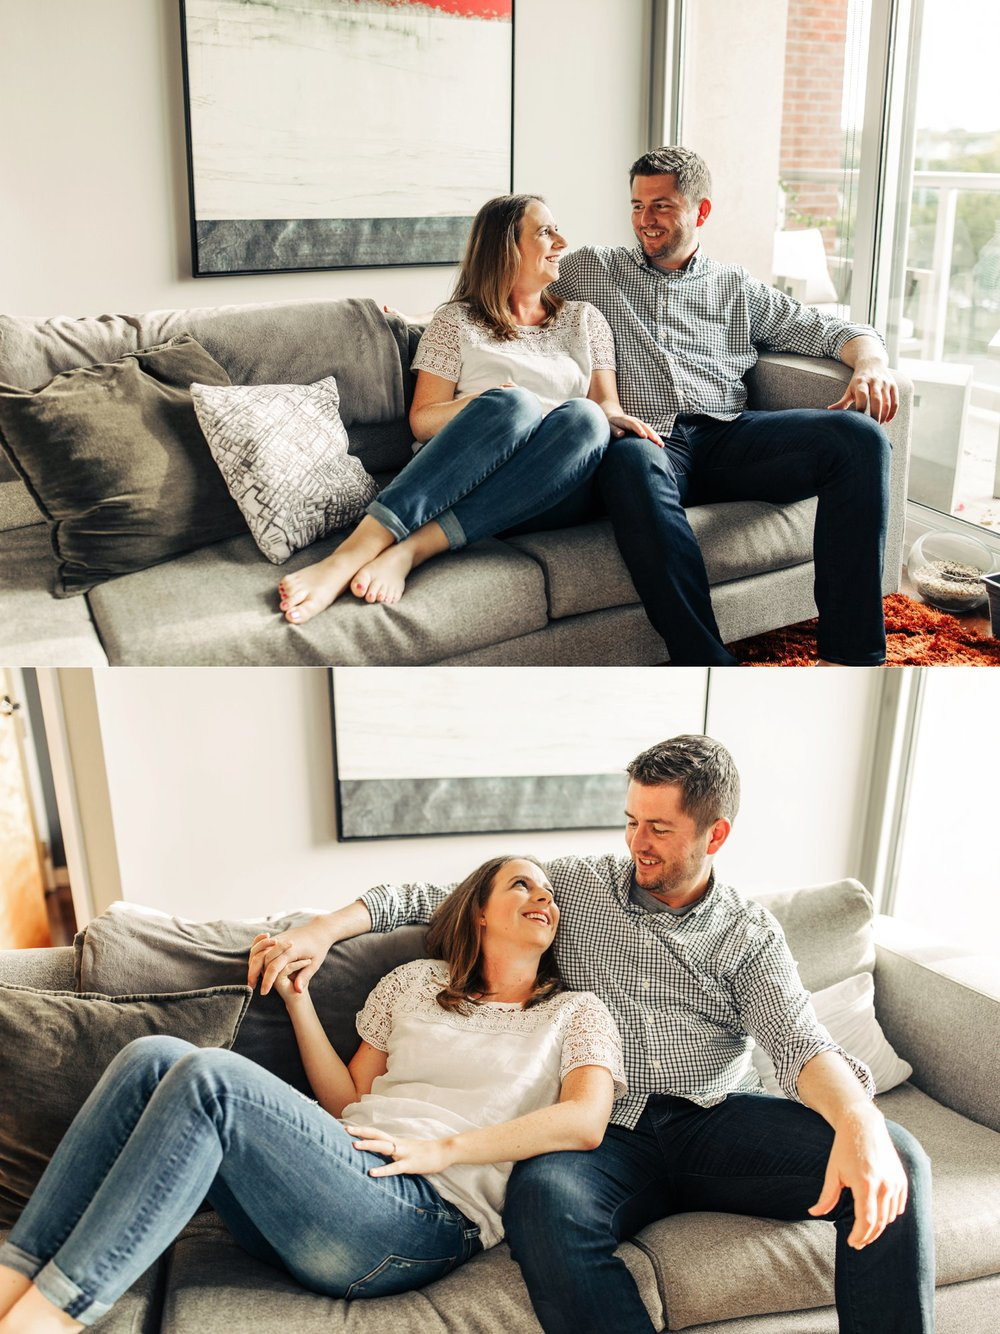 CK-Photo-Nashville-engagement-wedding-photographer